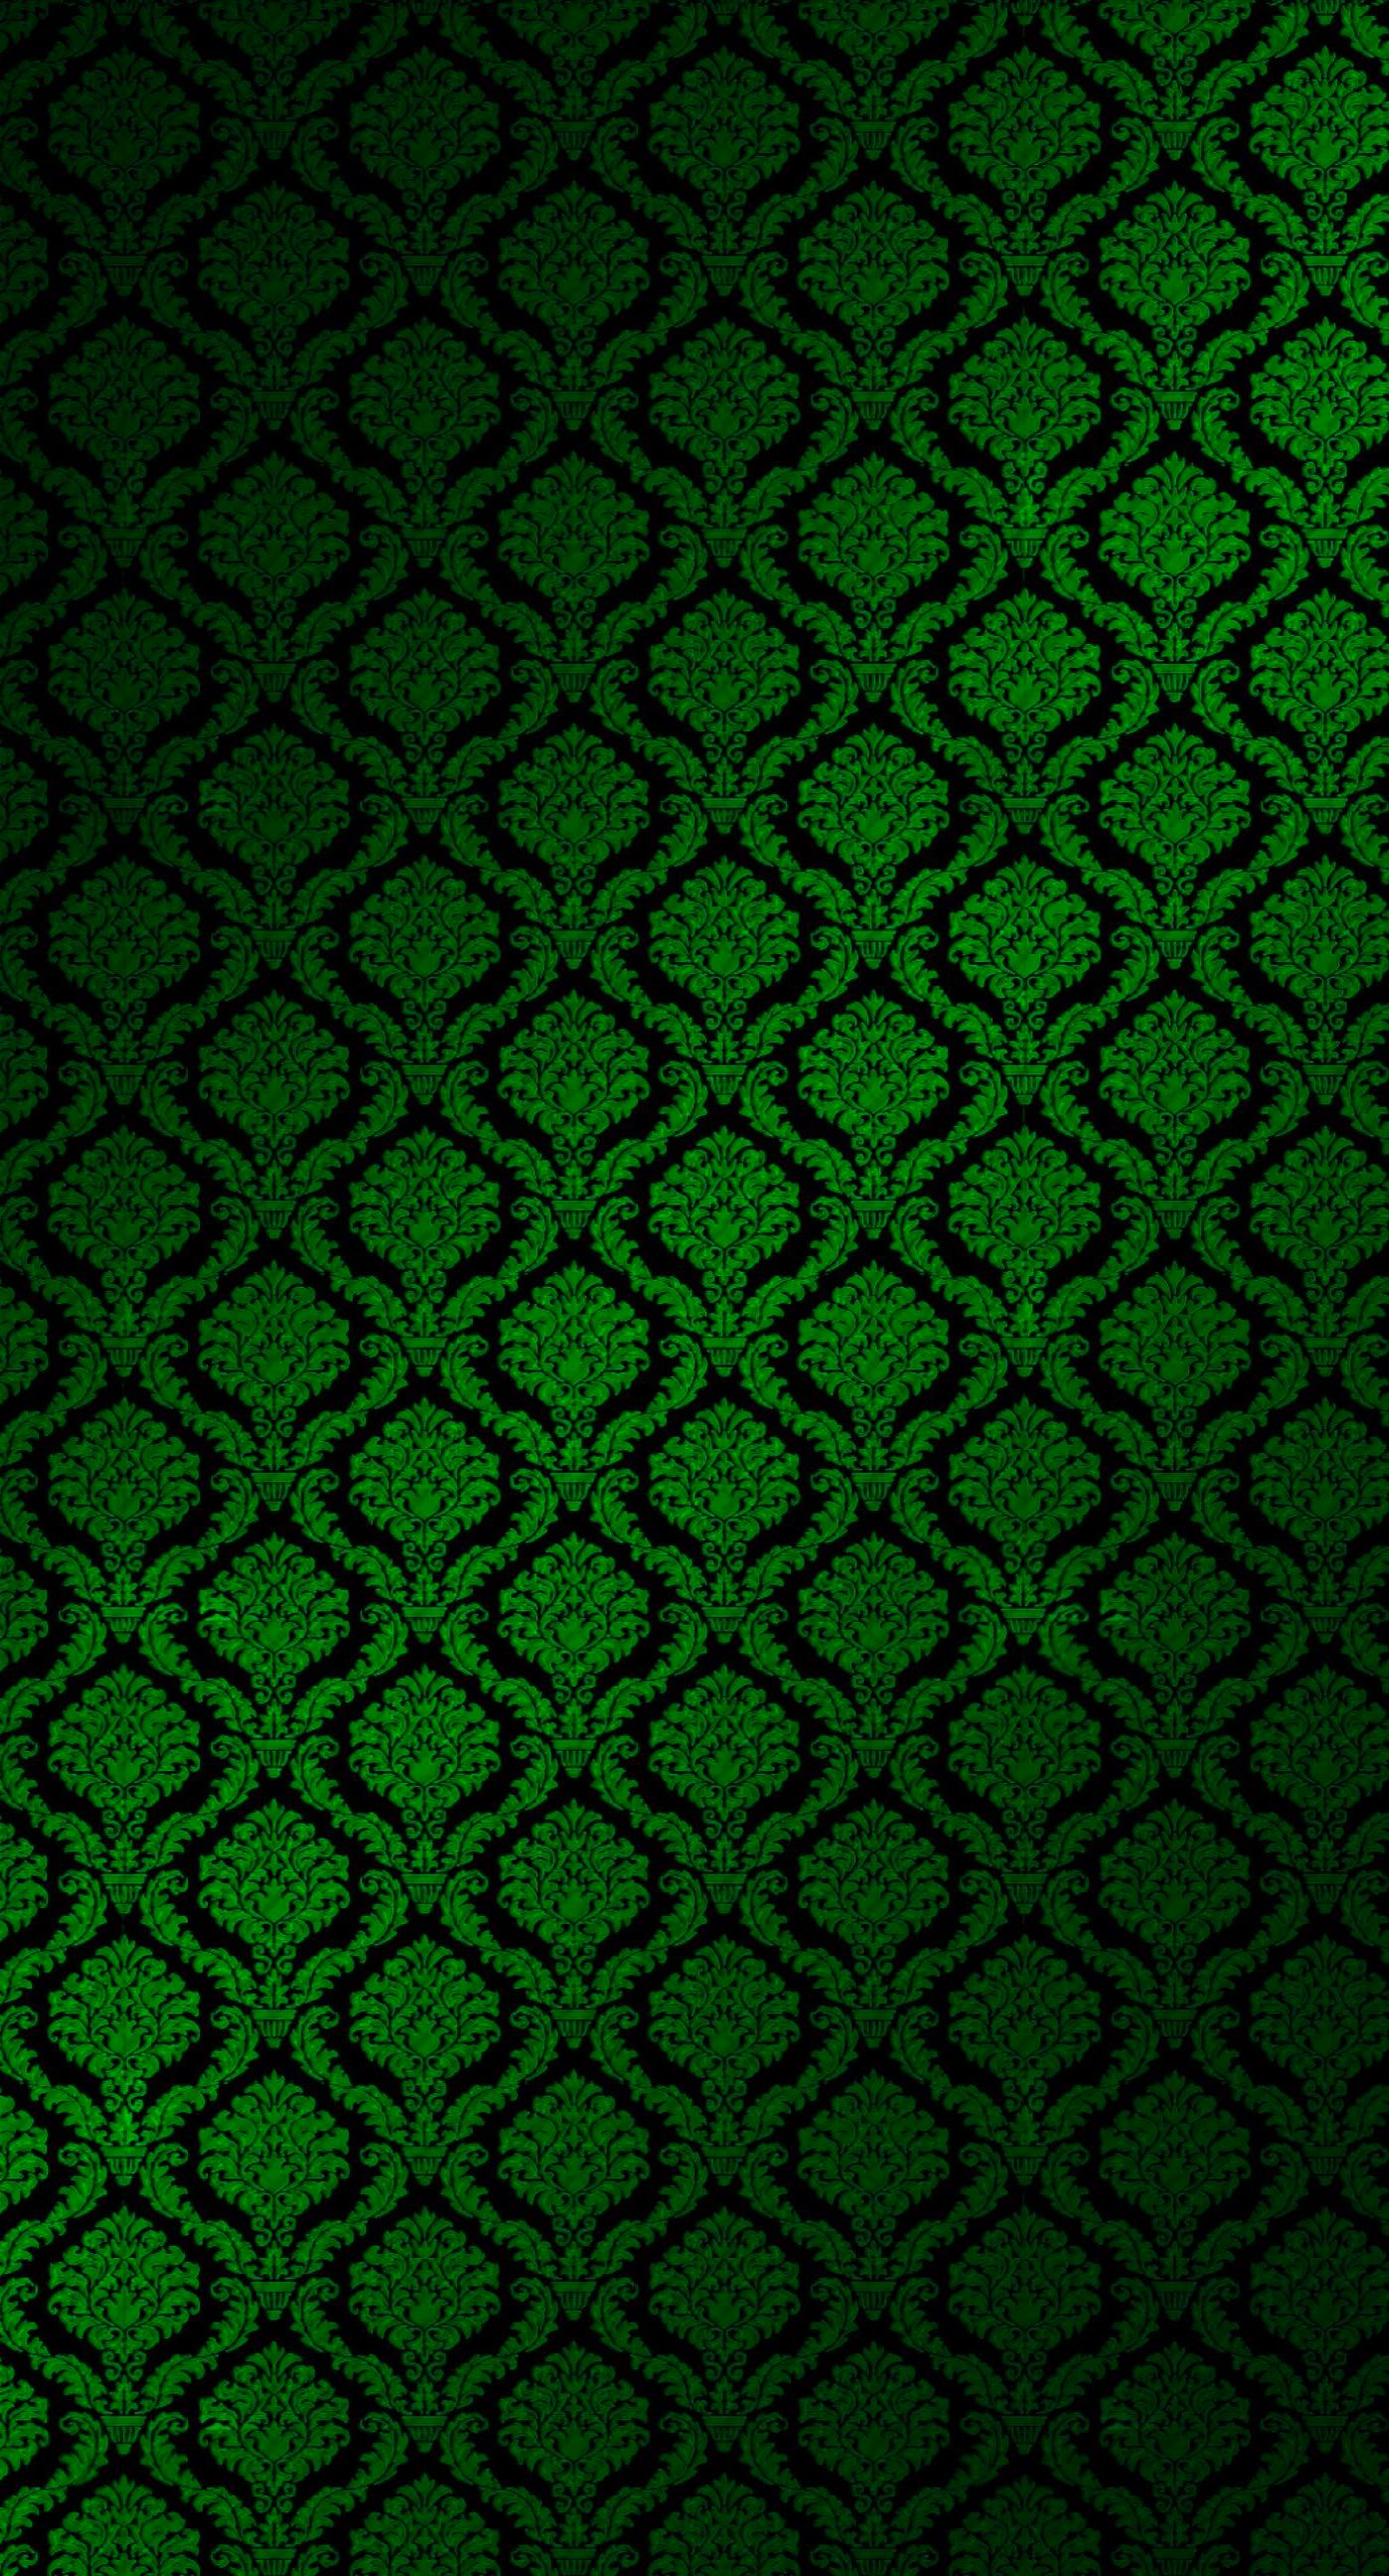 41 ] Green IPhone 7 Plus Wallpaper On WallpaperSafari